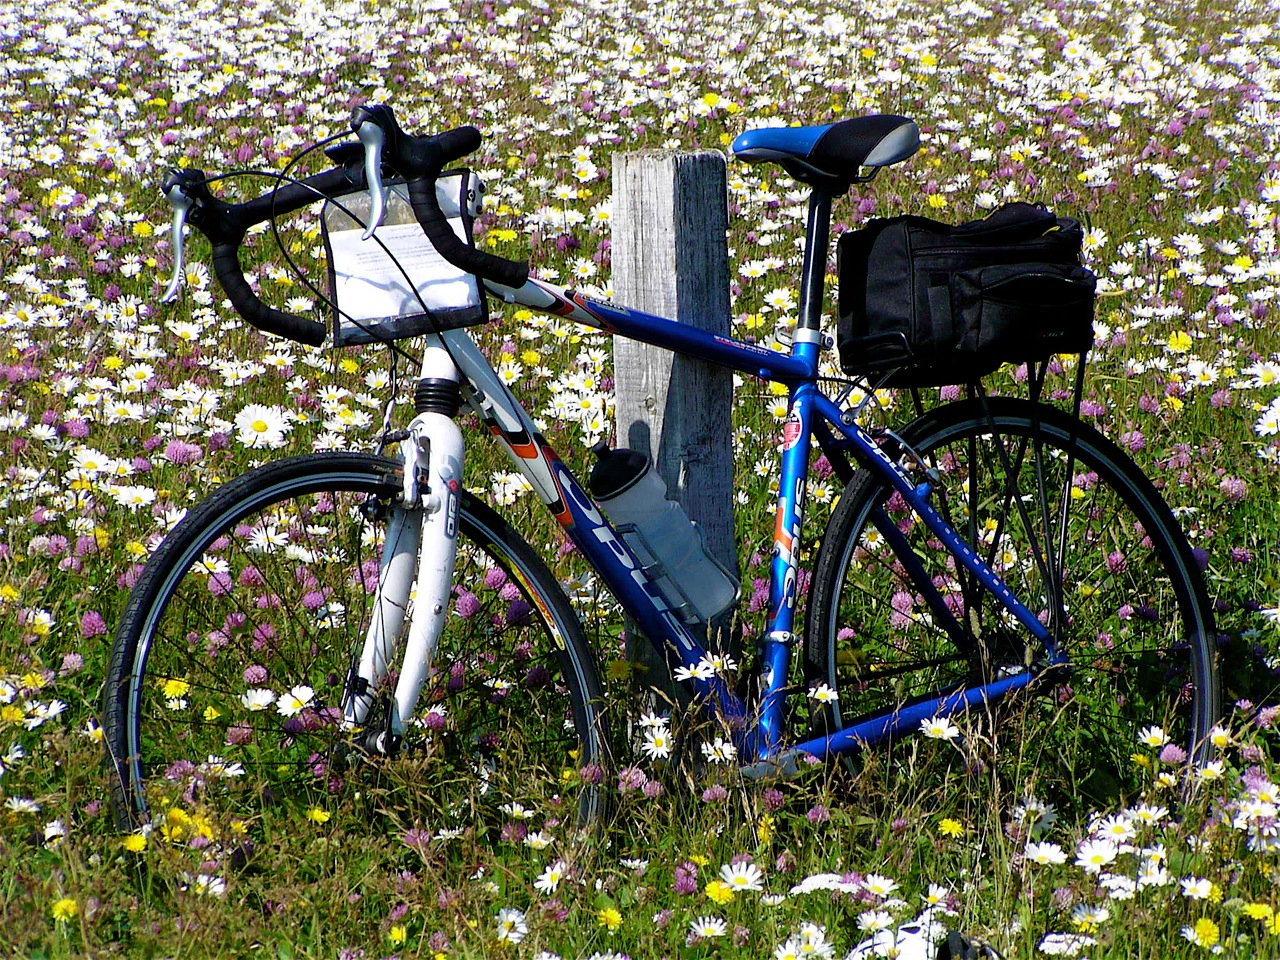 Nova Scotia Evangeline bike tour bike in flowers